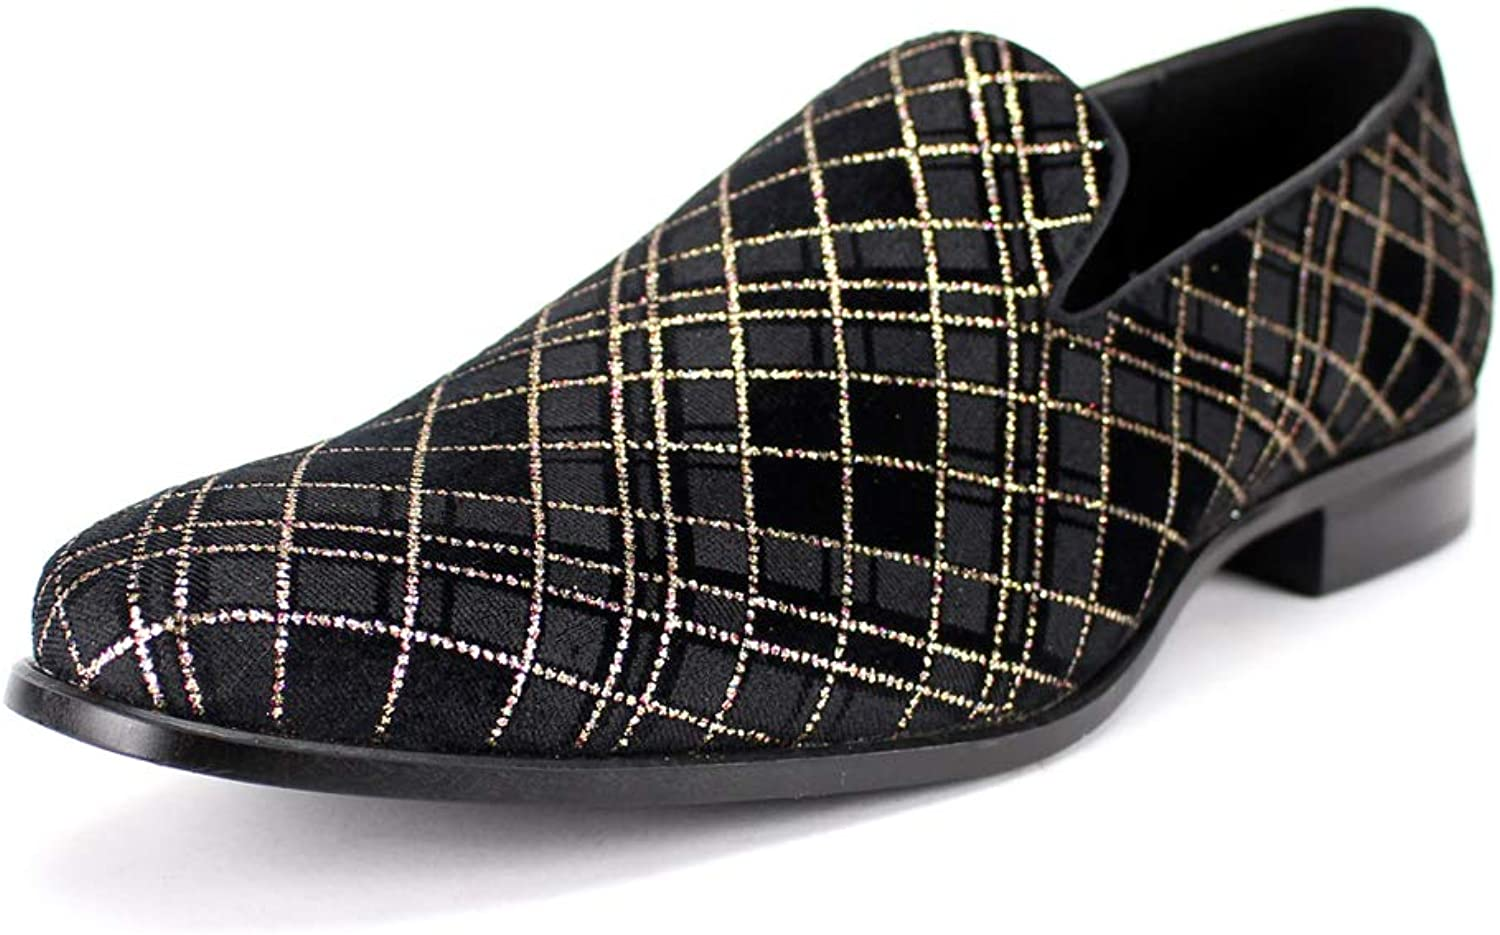 AFTER MIDNIGHT 8102 Smoking Slipper Mens Plaid Fabric Loafer